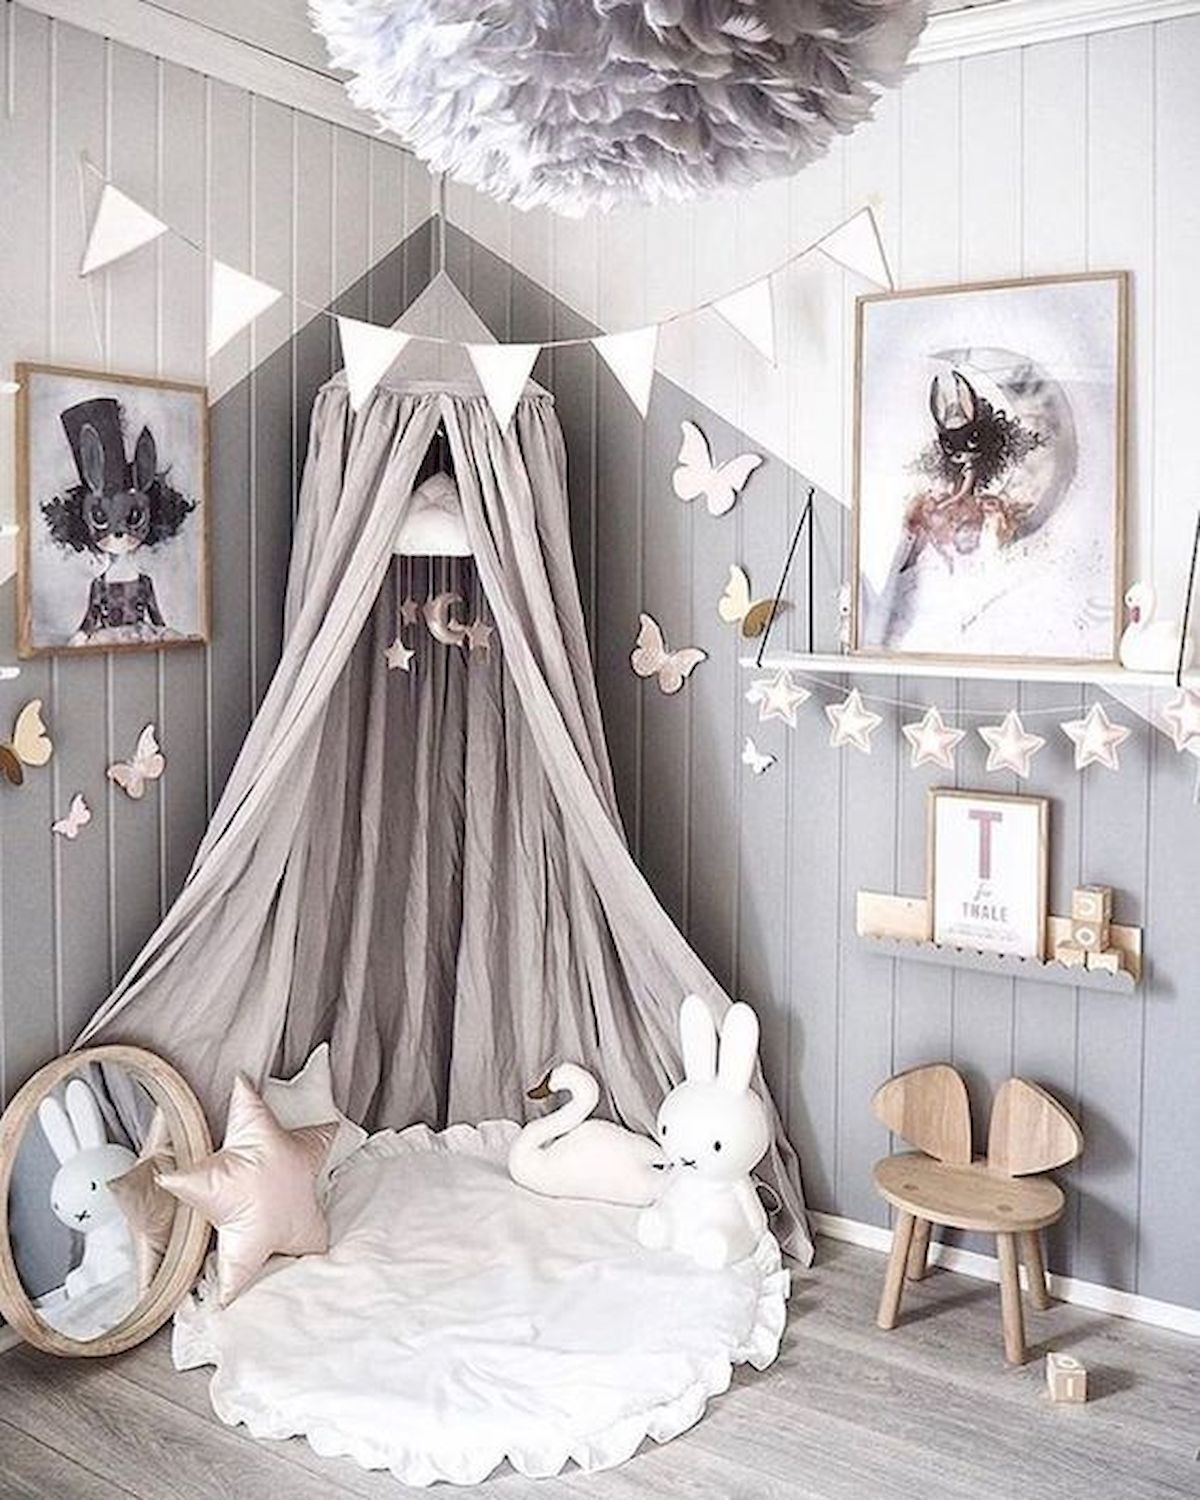 35 Best Baby Room Decor Ideas images